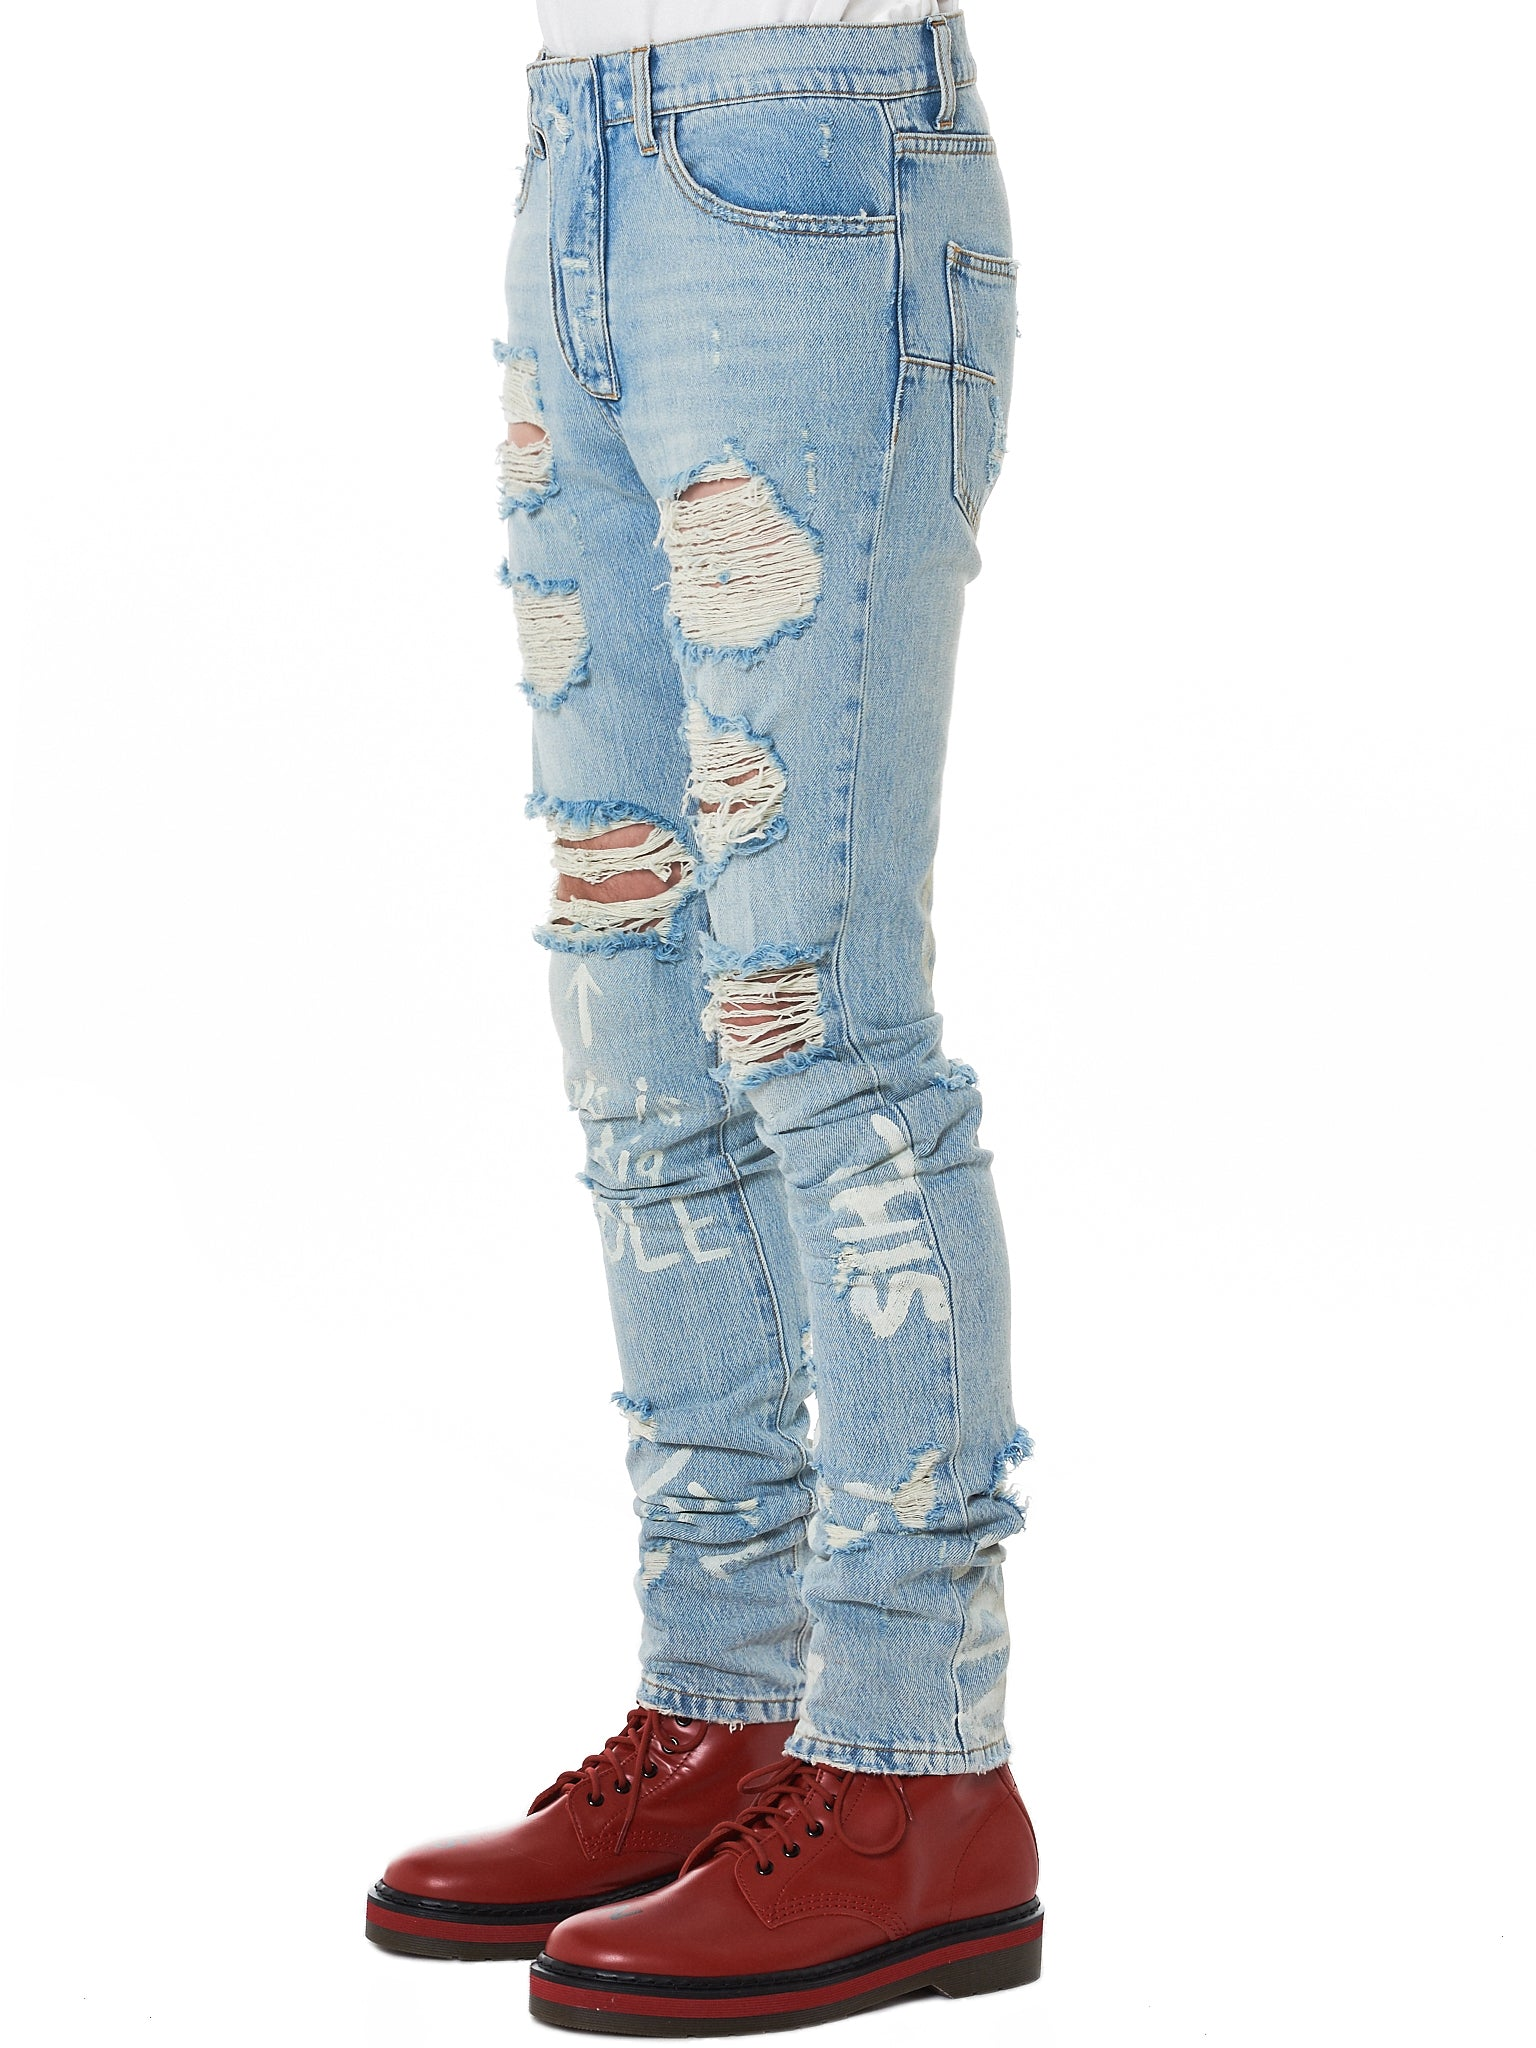 IH NOM UH NIT Distressed Denim - Hlorenzo Side